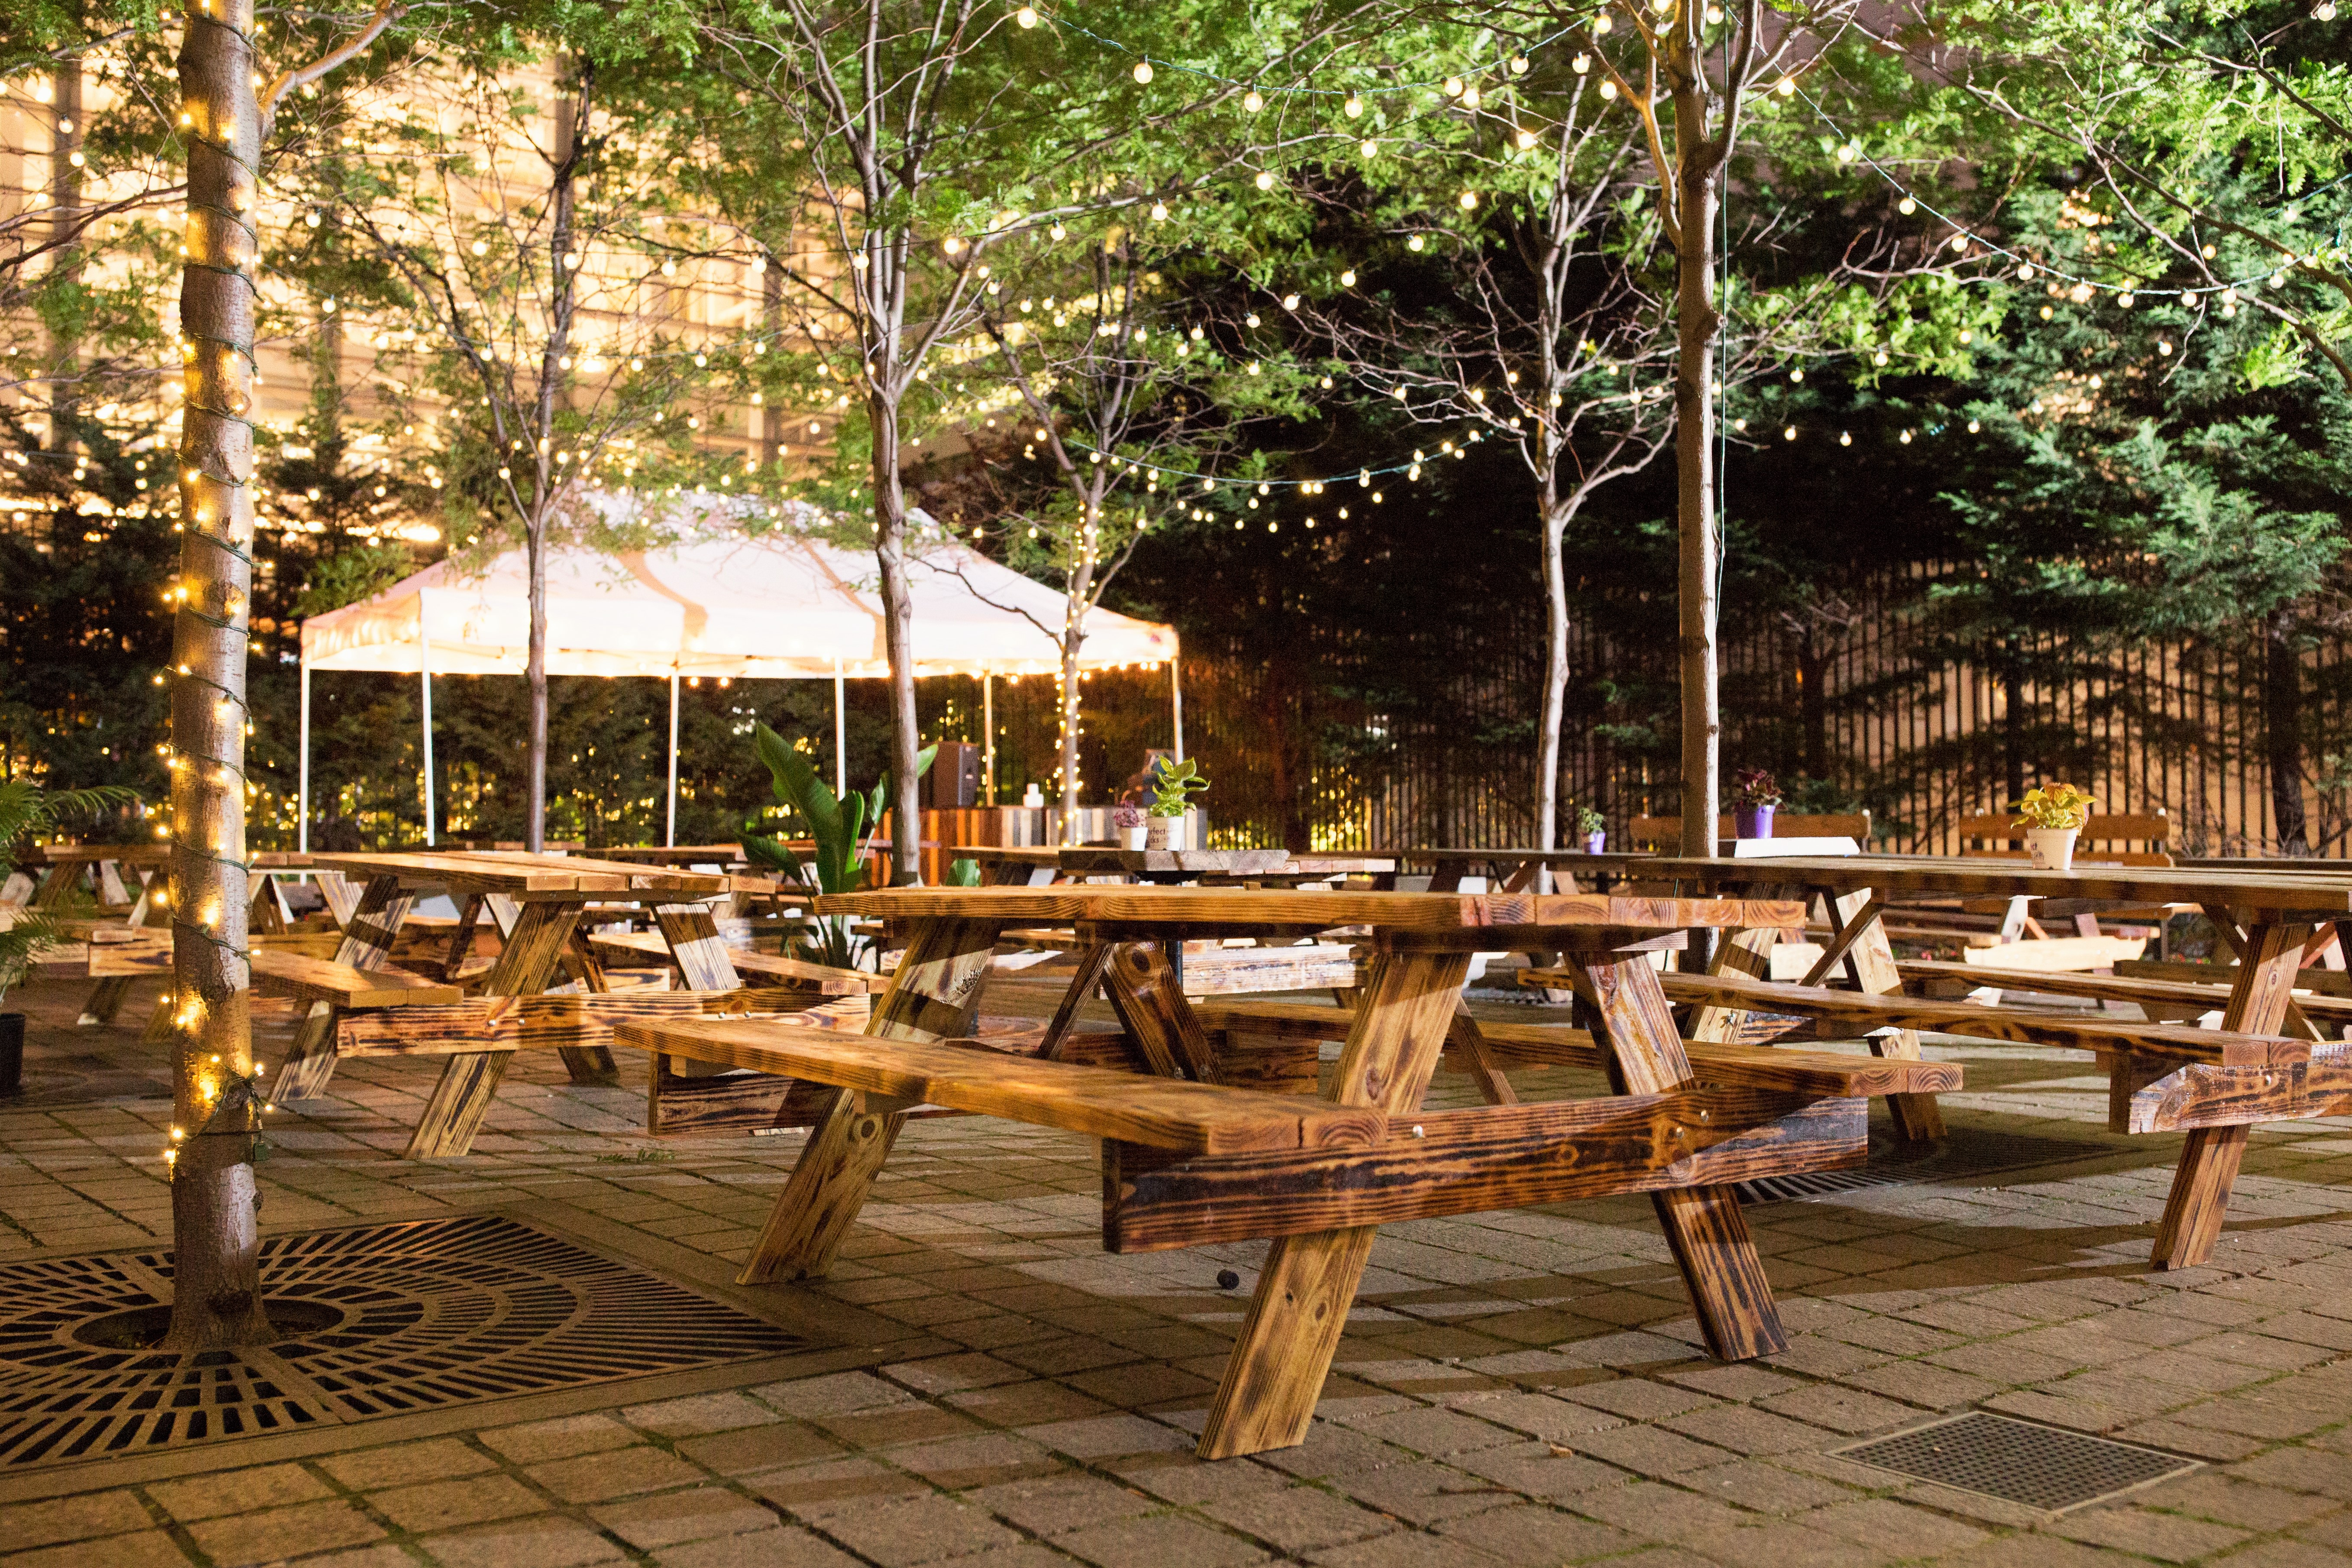 Check Out Uptown Beer Garden\'s New Look for 2016 - Eater Philly